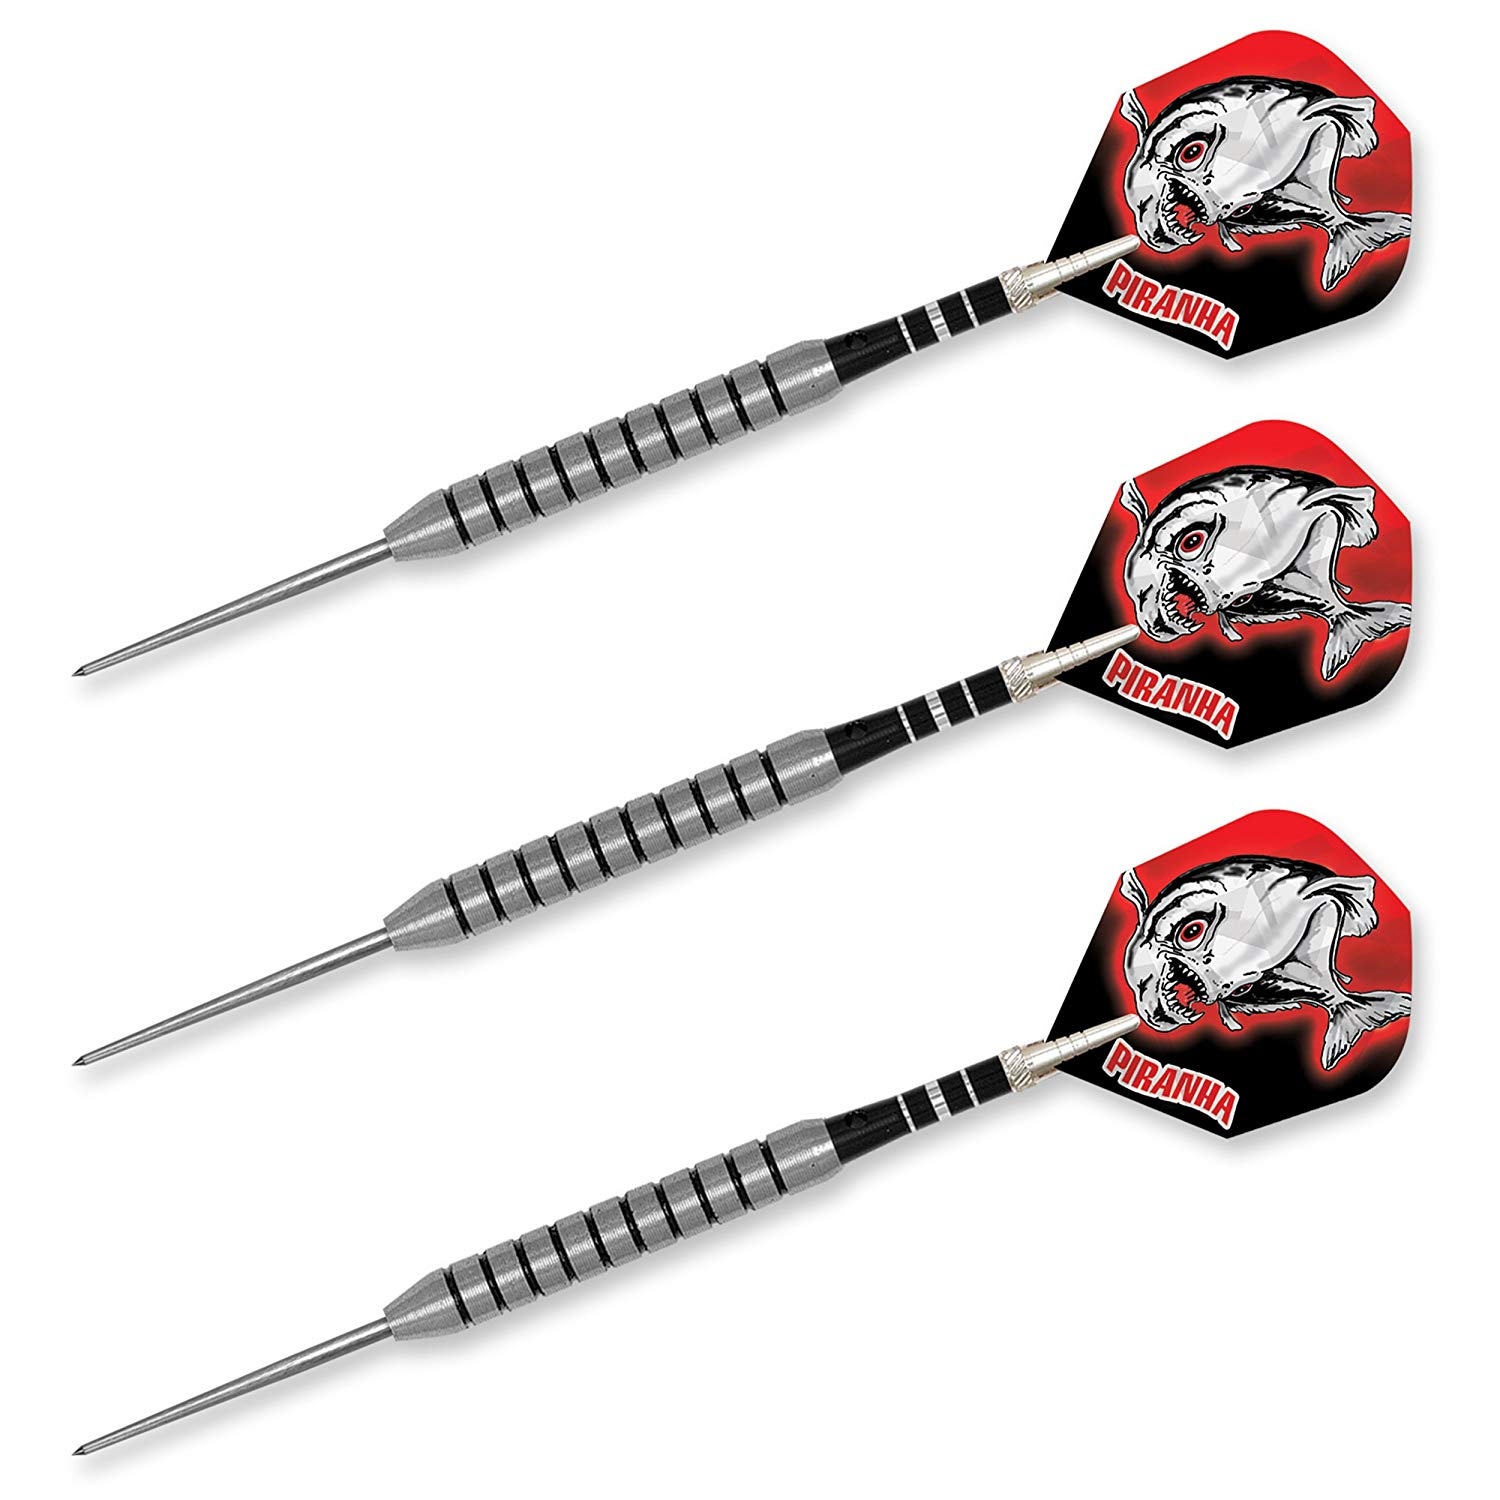 19517 Piranha Razor Grip 90% Tungsten Dart